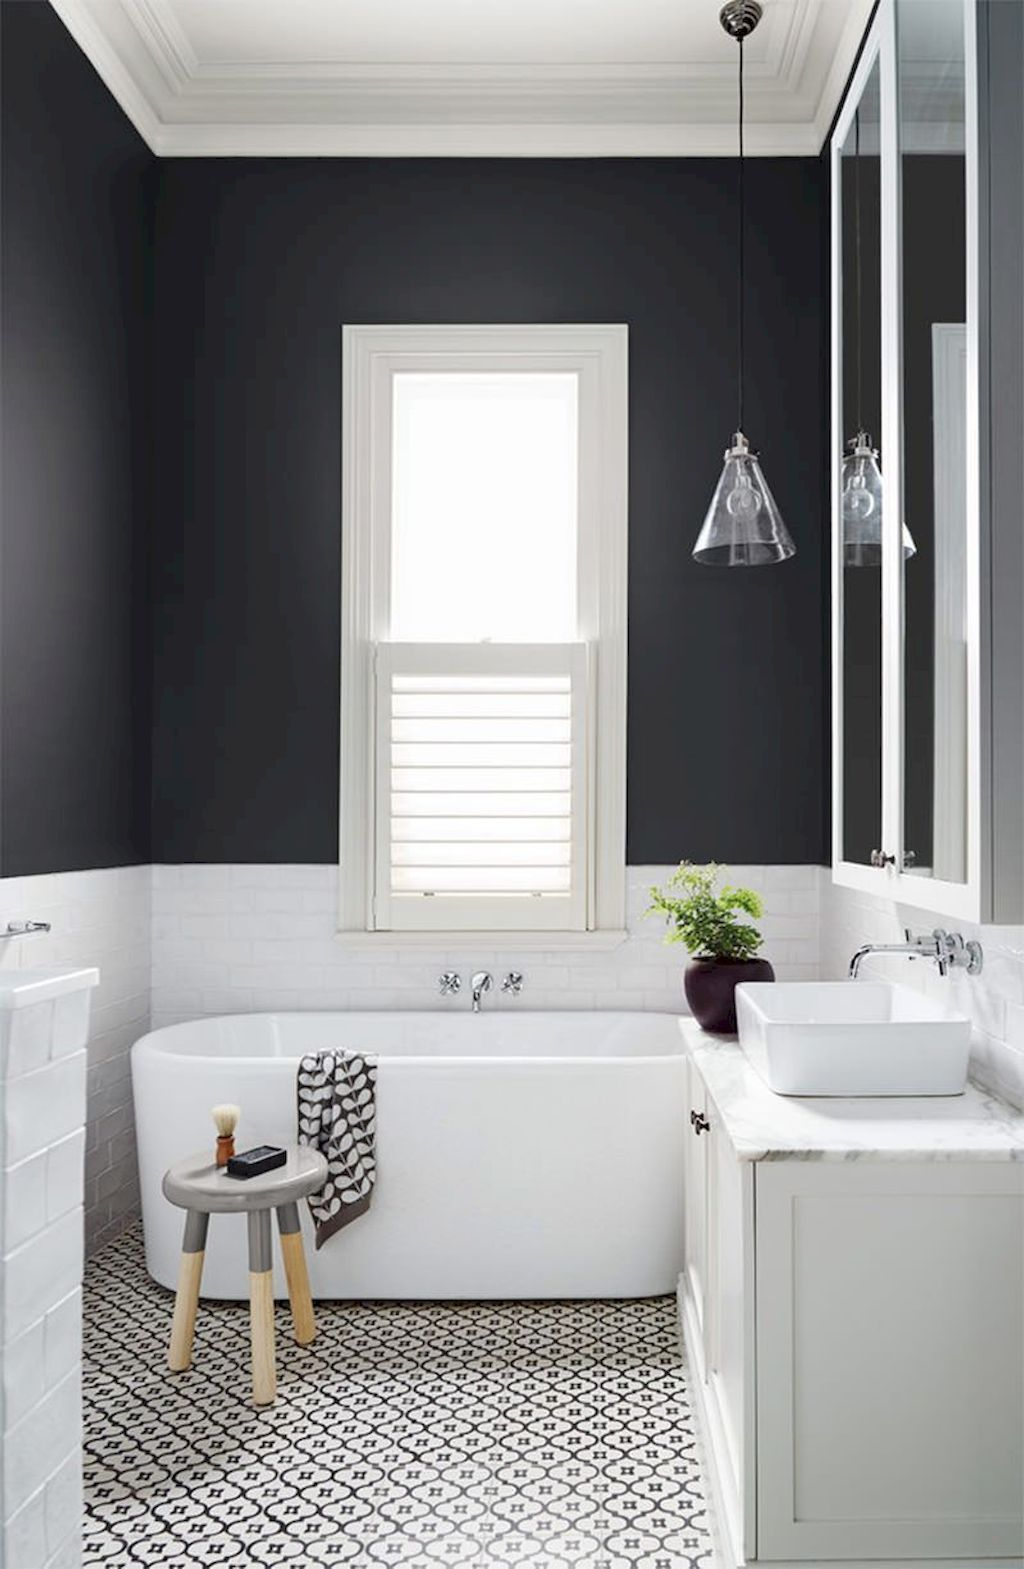 Must See Bathroom Tiles Ideas How To Configure It In Small Space White Bathroom Designs Bathroom Design Small Small Bathroom Remodel